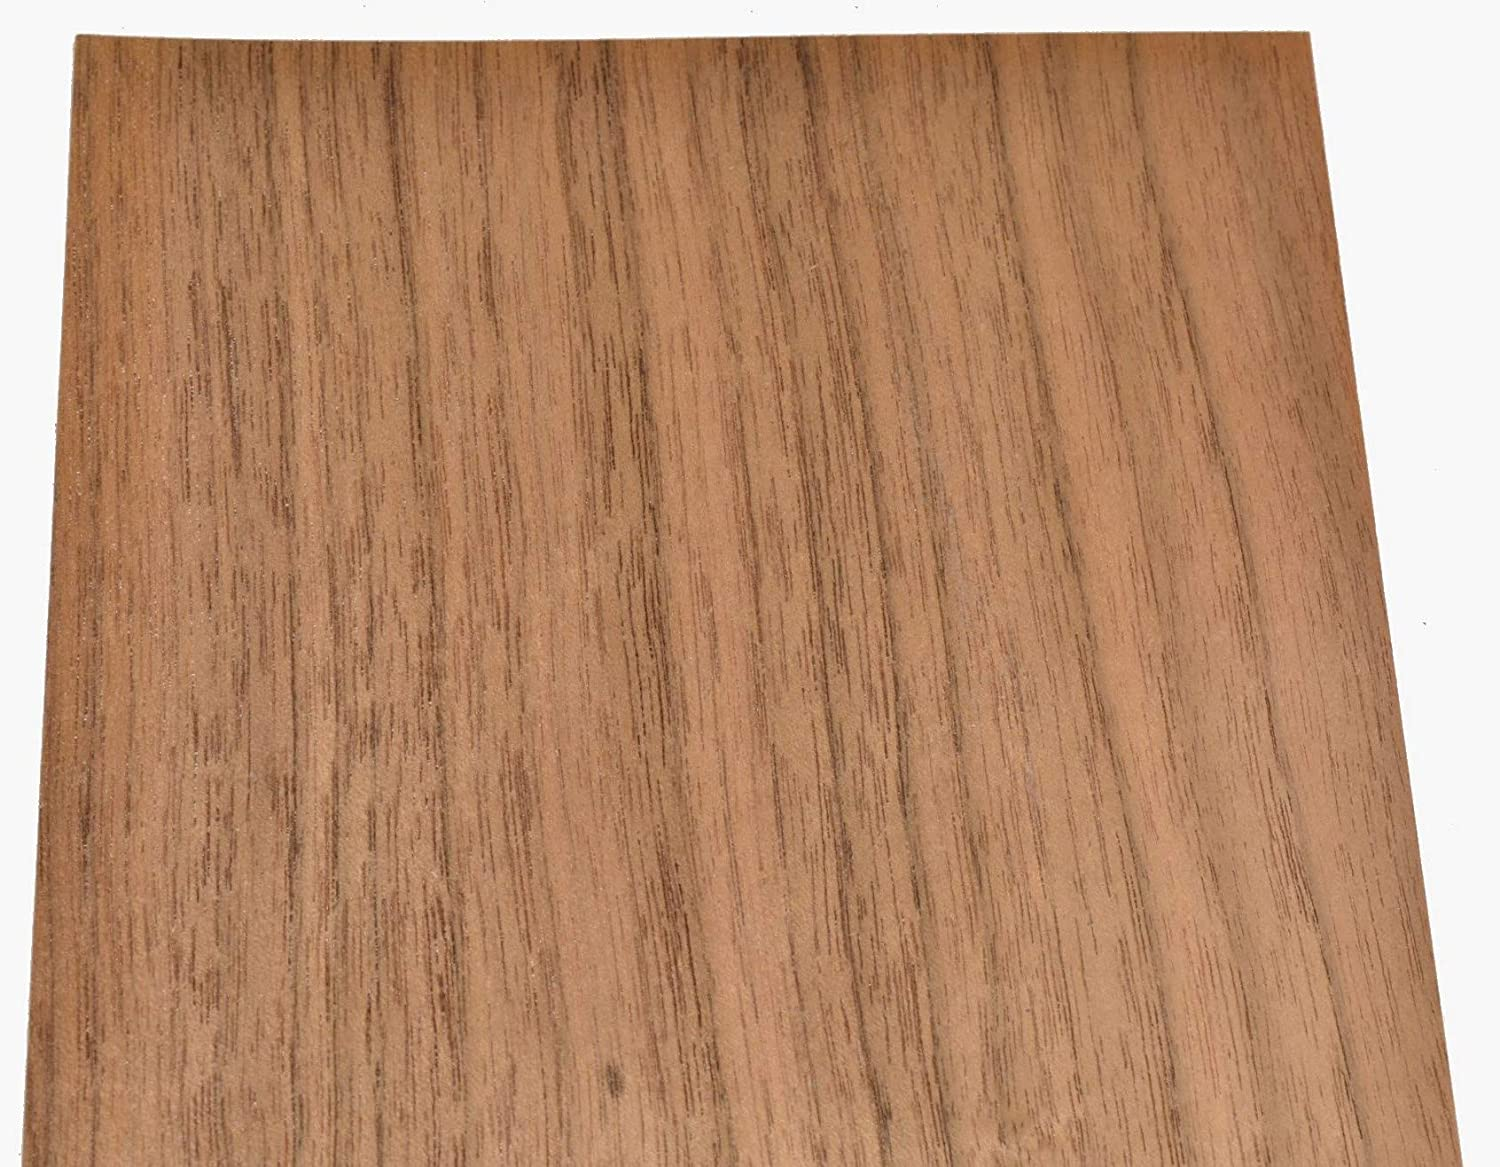 Walnut Raw Wood Veneer Sheets Cheap mail Many popular brands order sales 6 Thick 1 inches 42nd 40 x